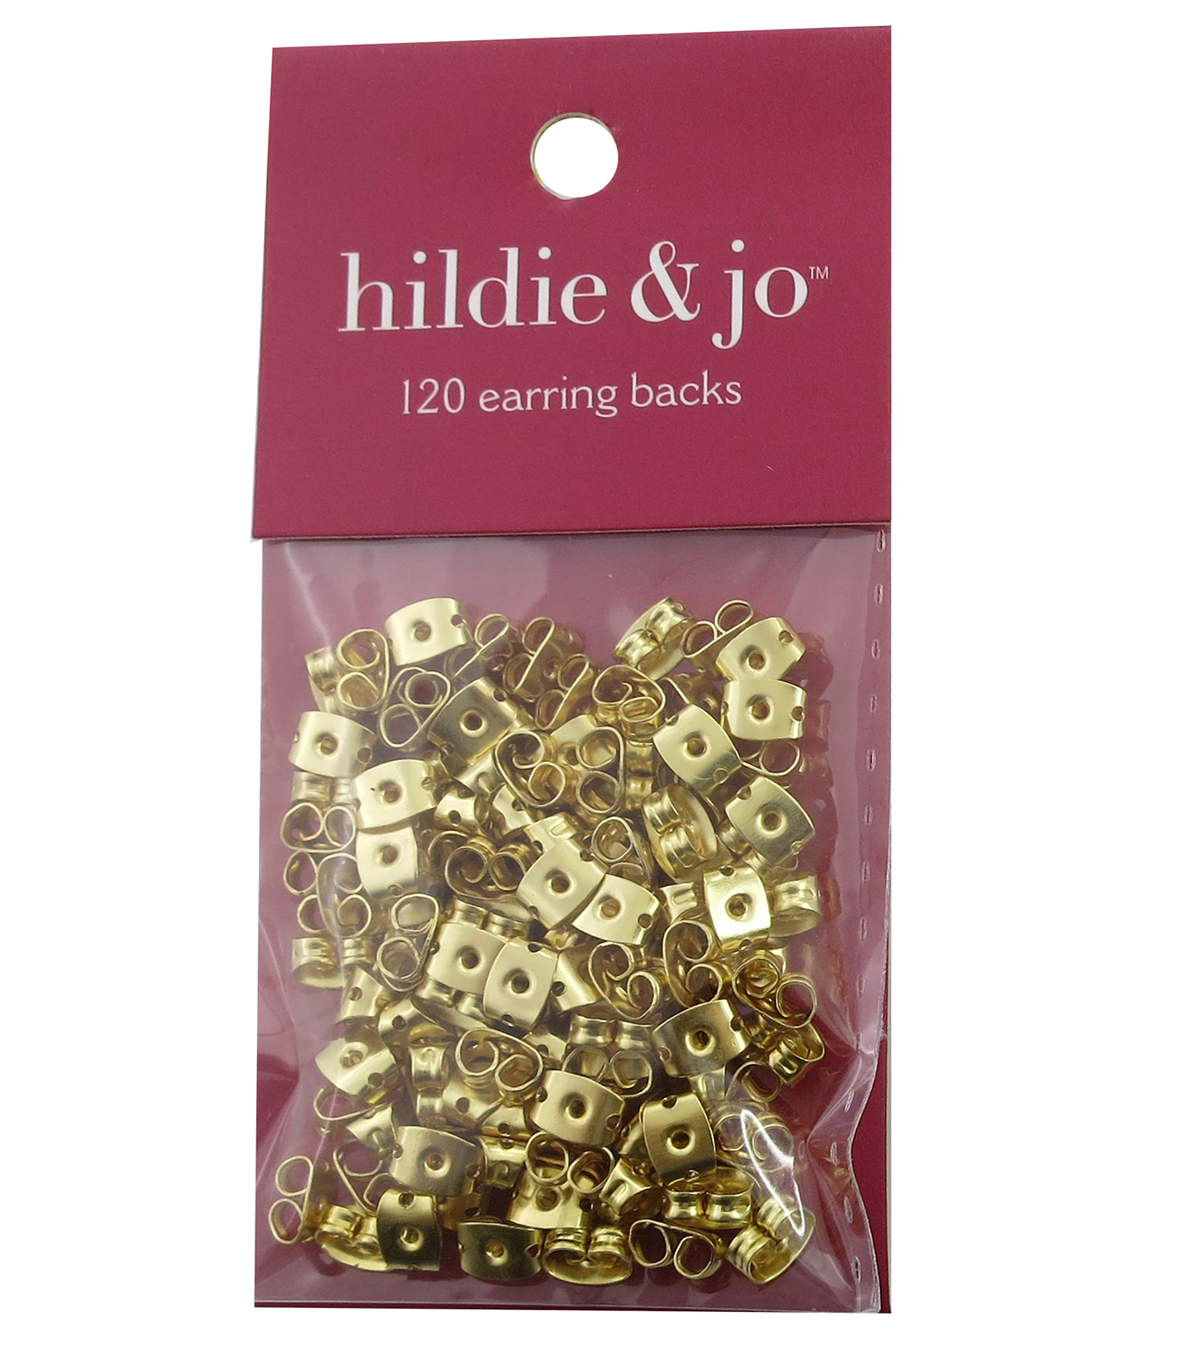 hildie & jo™ 120 Pack Earring Backs-Gold